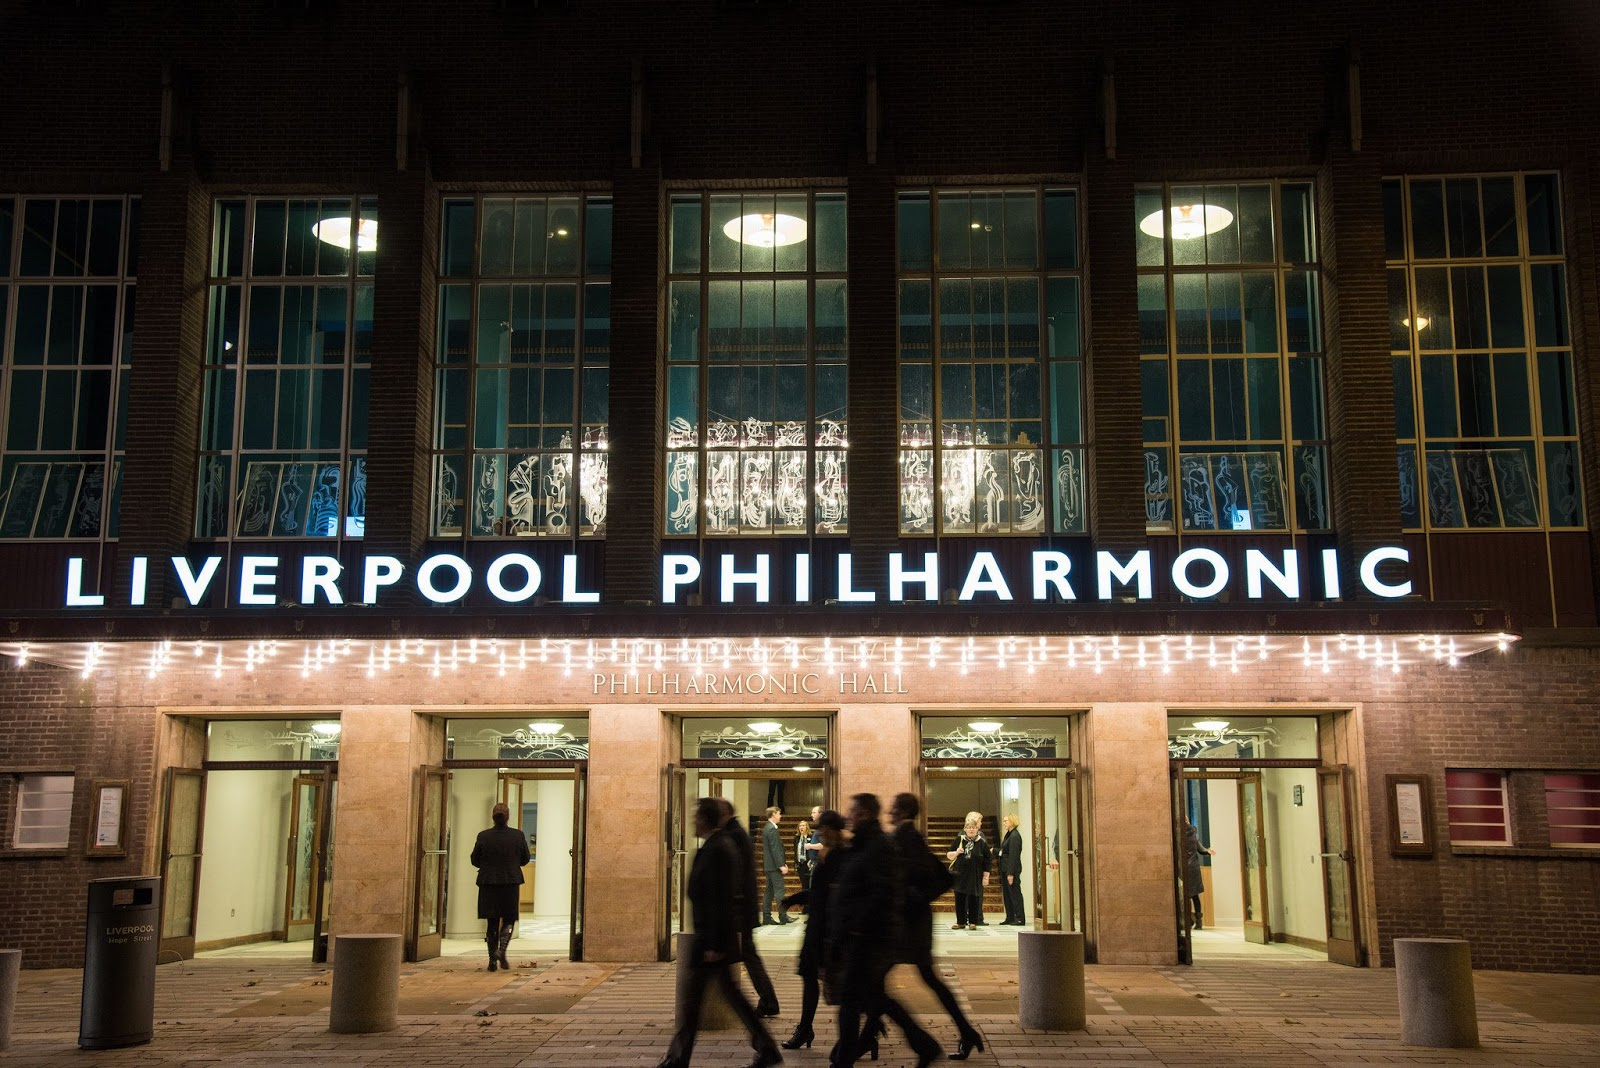 Liverpool Philharmonic Grand Foyer Bar : A f s i caruso st john